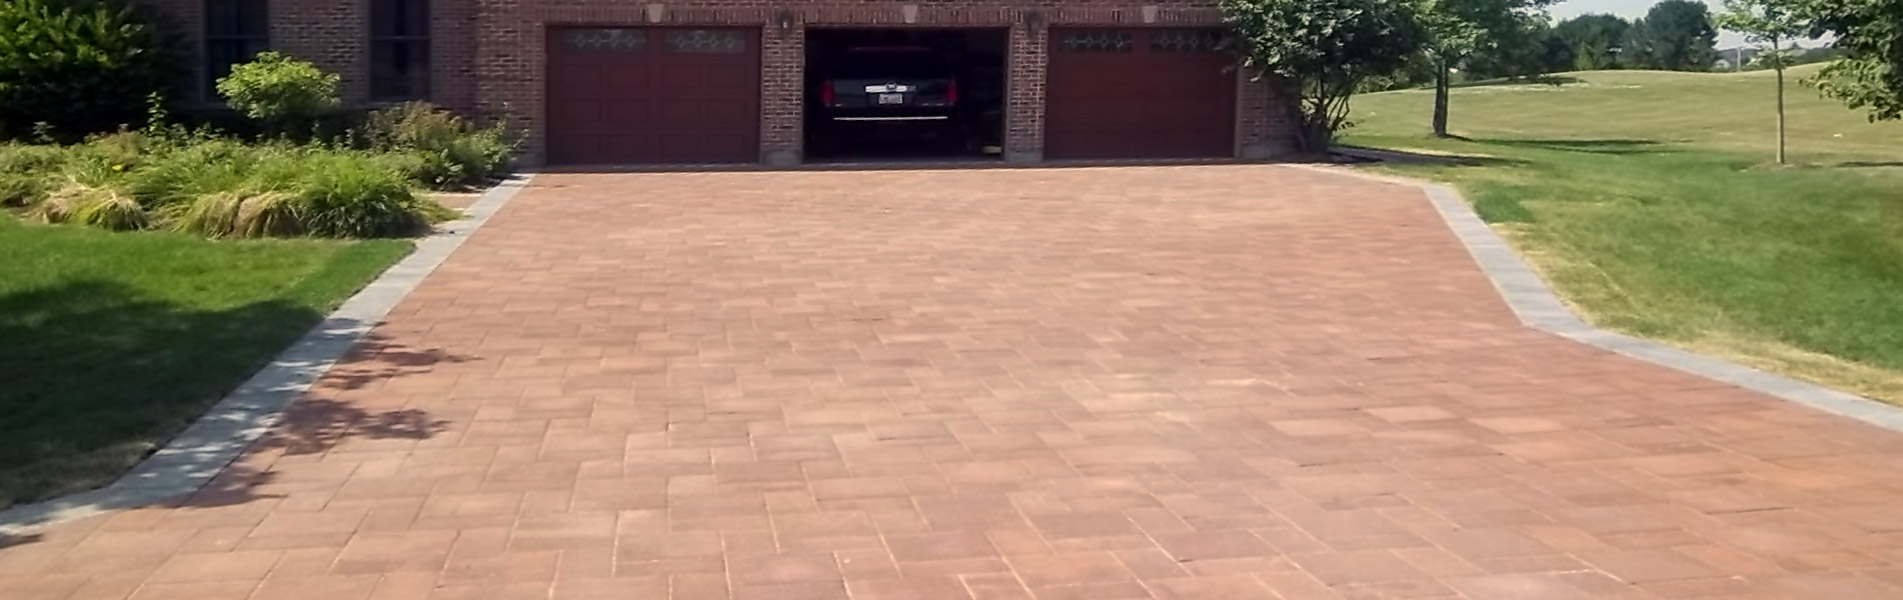 Custom Brick Driveway Installation Services by B&C Pavers and Landscaping Inc.